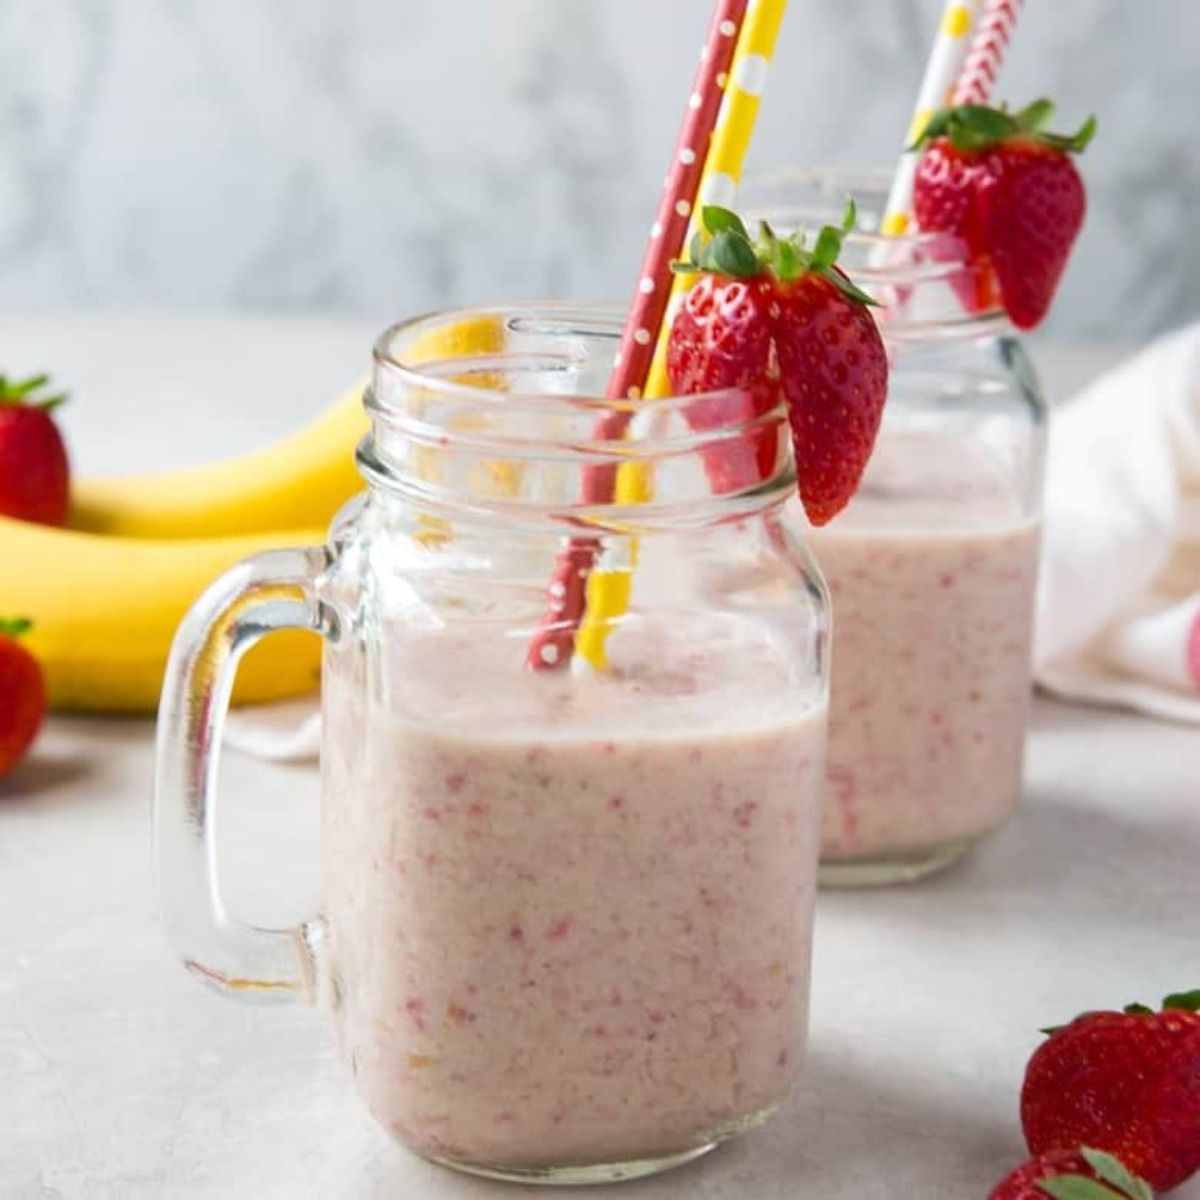 2 squared mason jars with strawberry banana smoothie in them, garnished with whole strawberries and each with a red and yellow straw in them